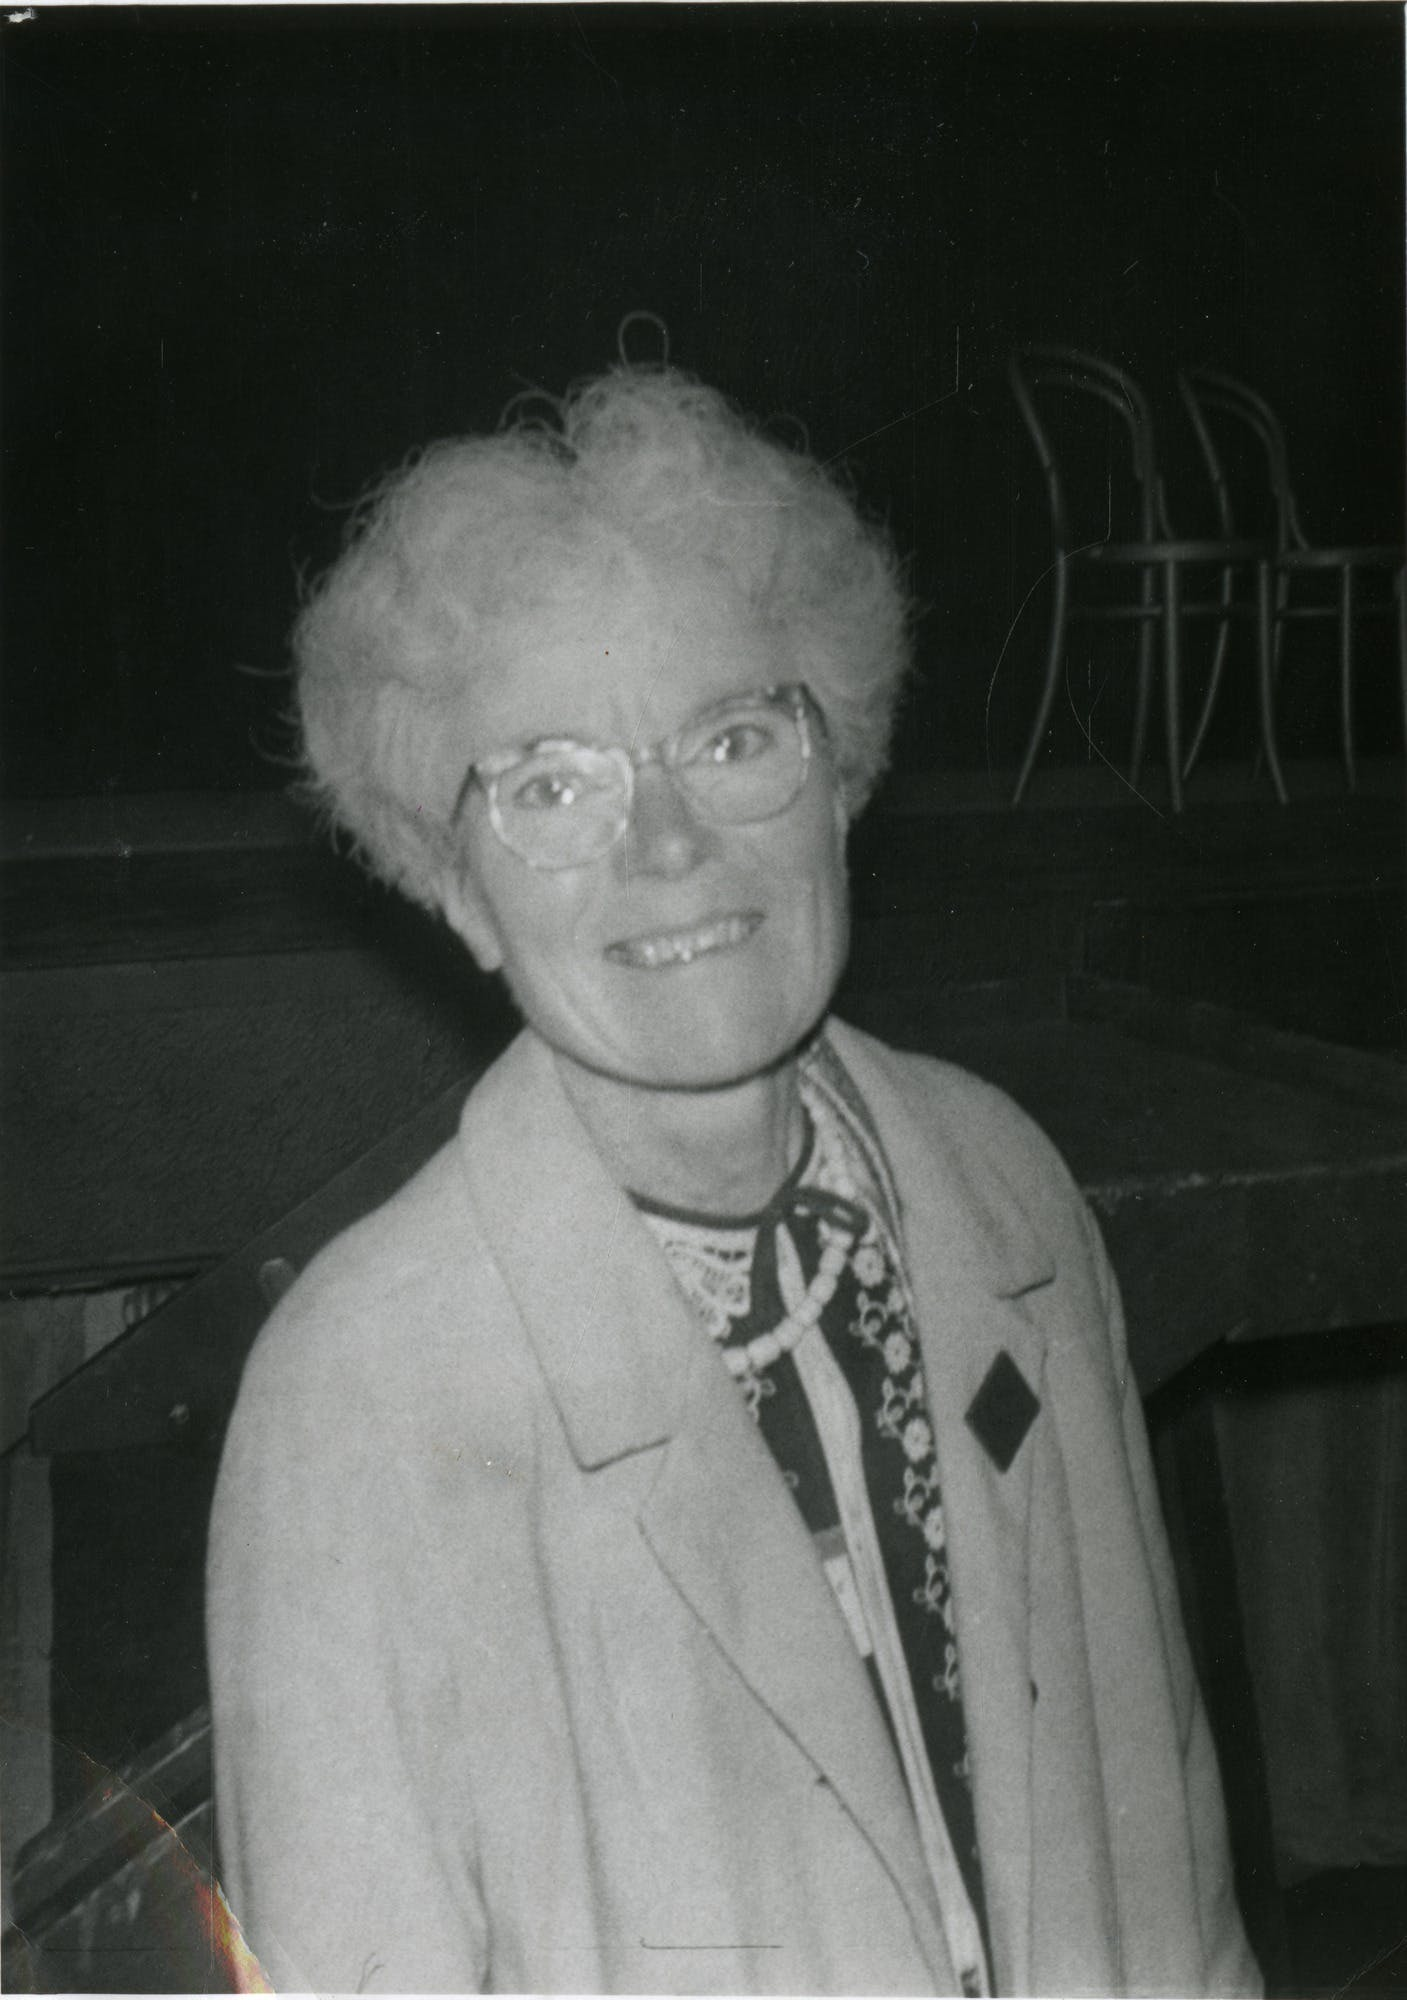 Kathleen Lonsdale is the first woman elected as President of the British Association for the Advancement of Science